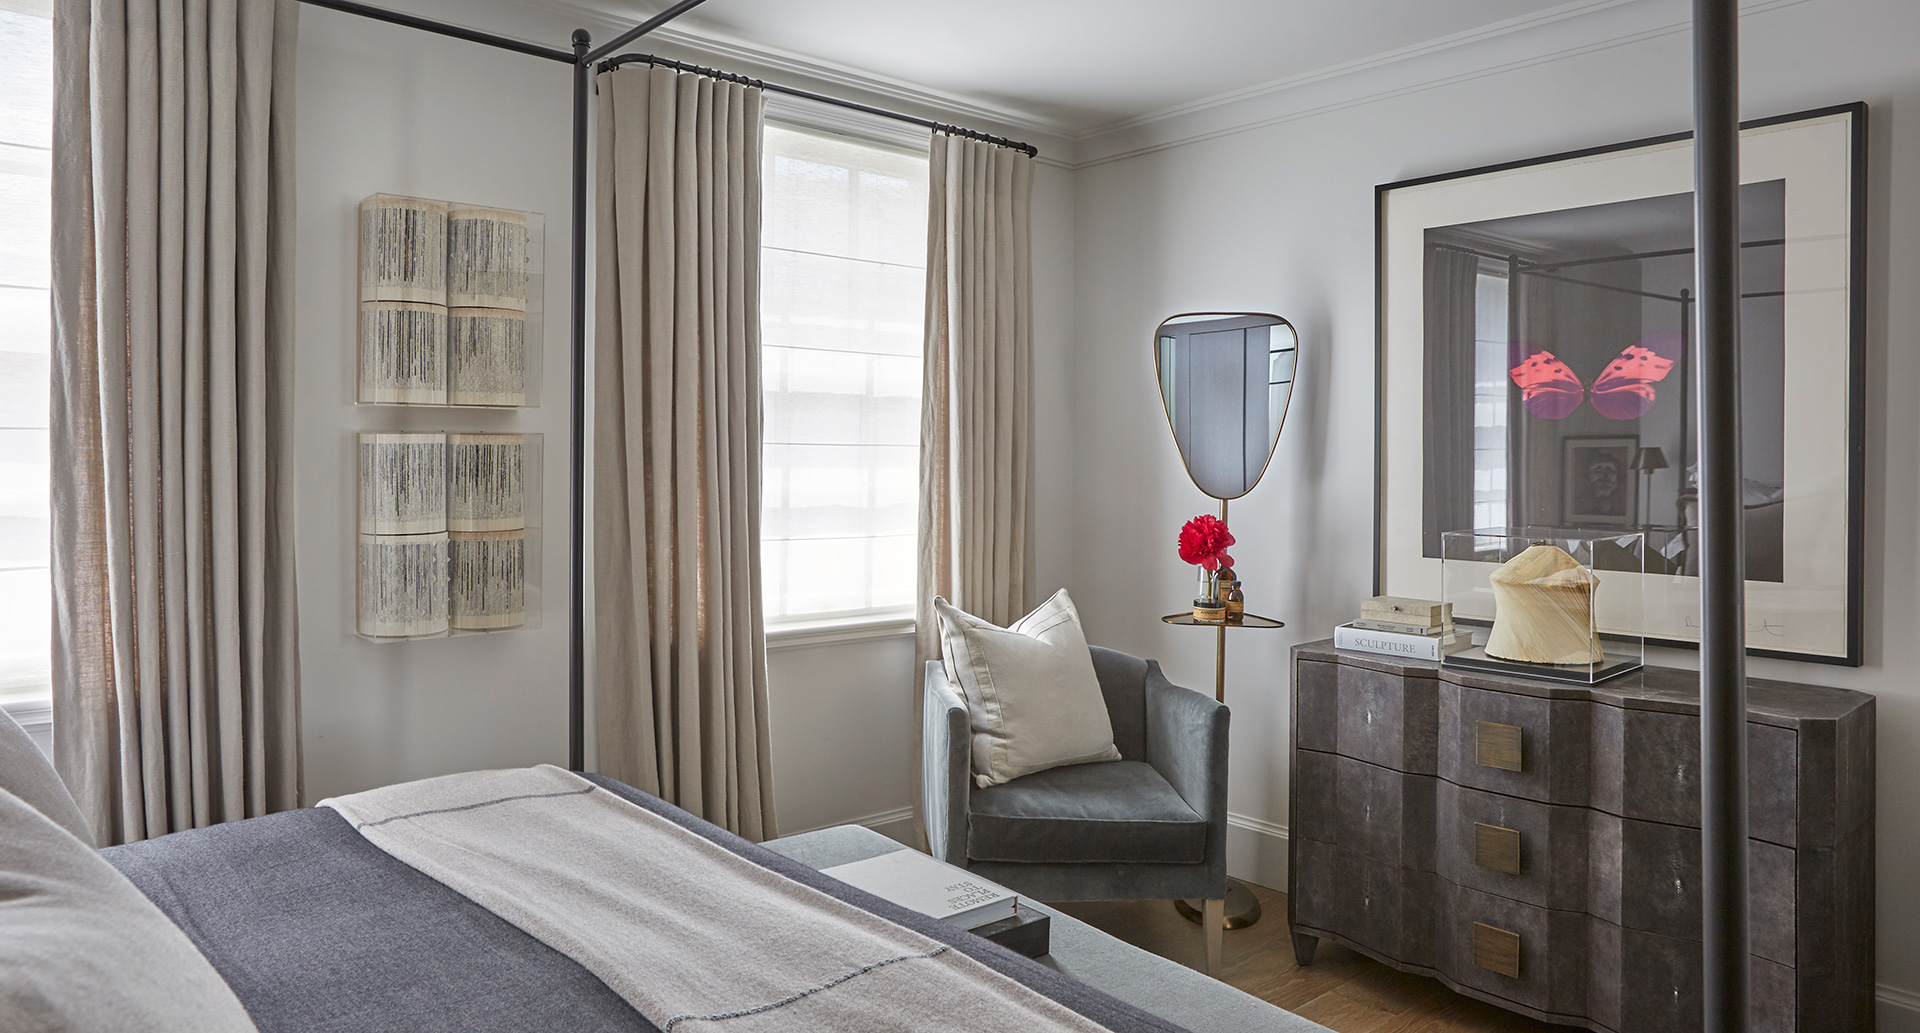 Mostly, the palette seems washed with neutrals in a shade of taupe, but on a closer look, one realises the clever splashes of colour and texture| Louise Bradley| London| STIR